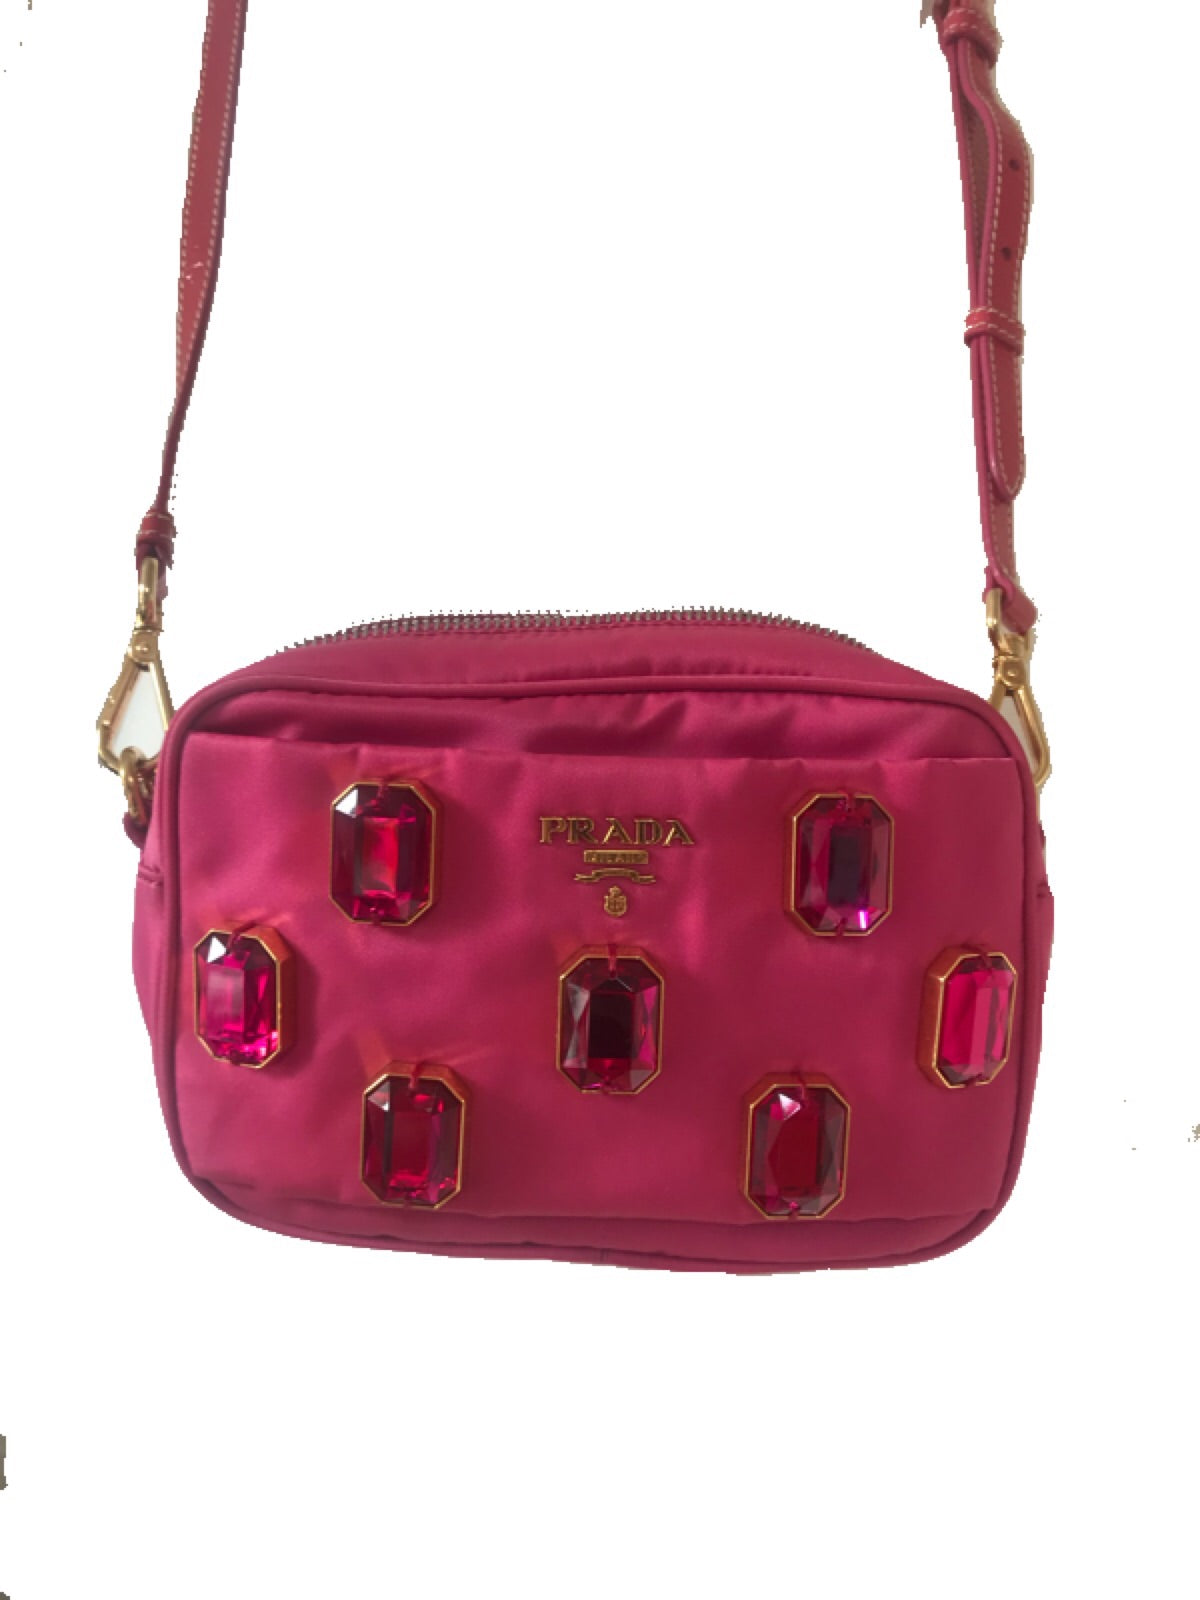 PRADA - PINK RHINESTONES MINI CAMERA BAG